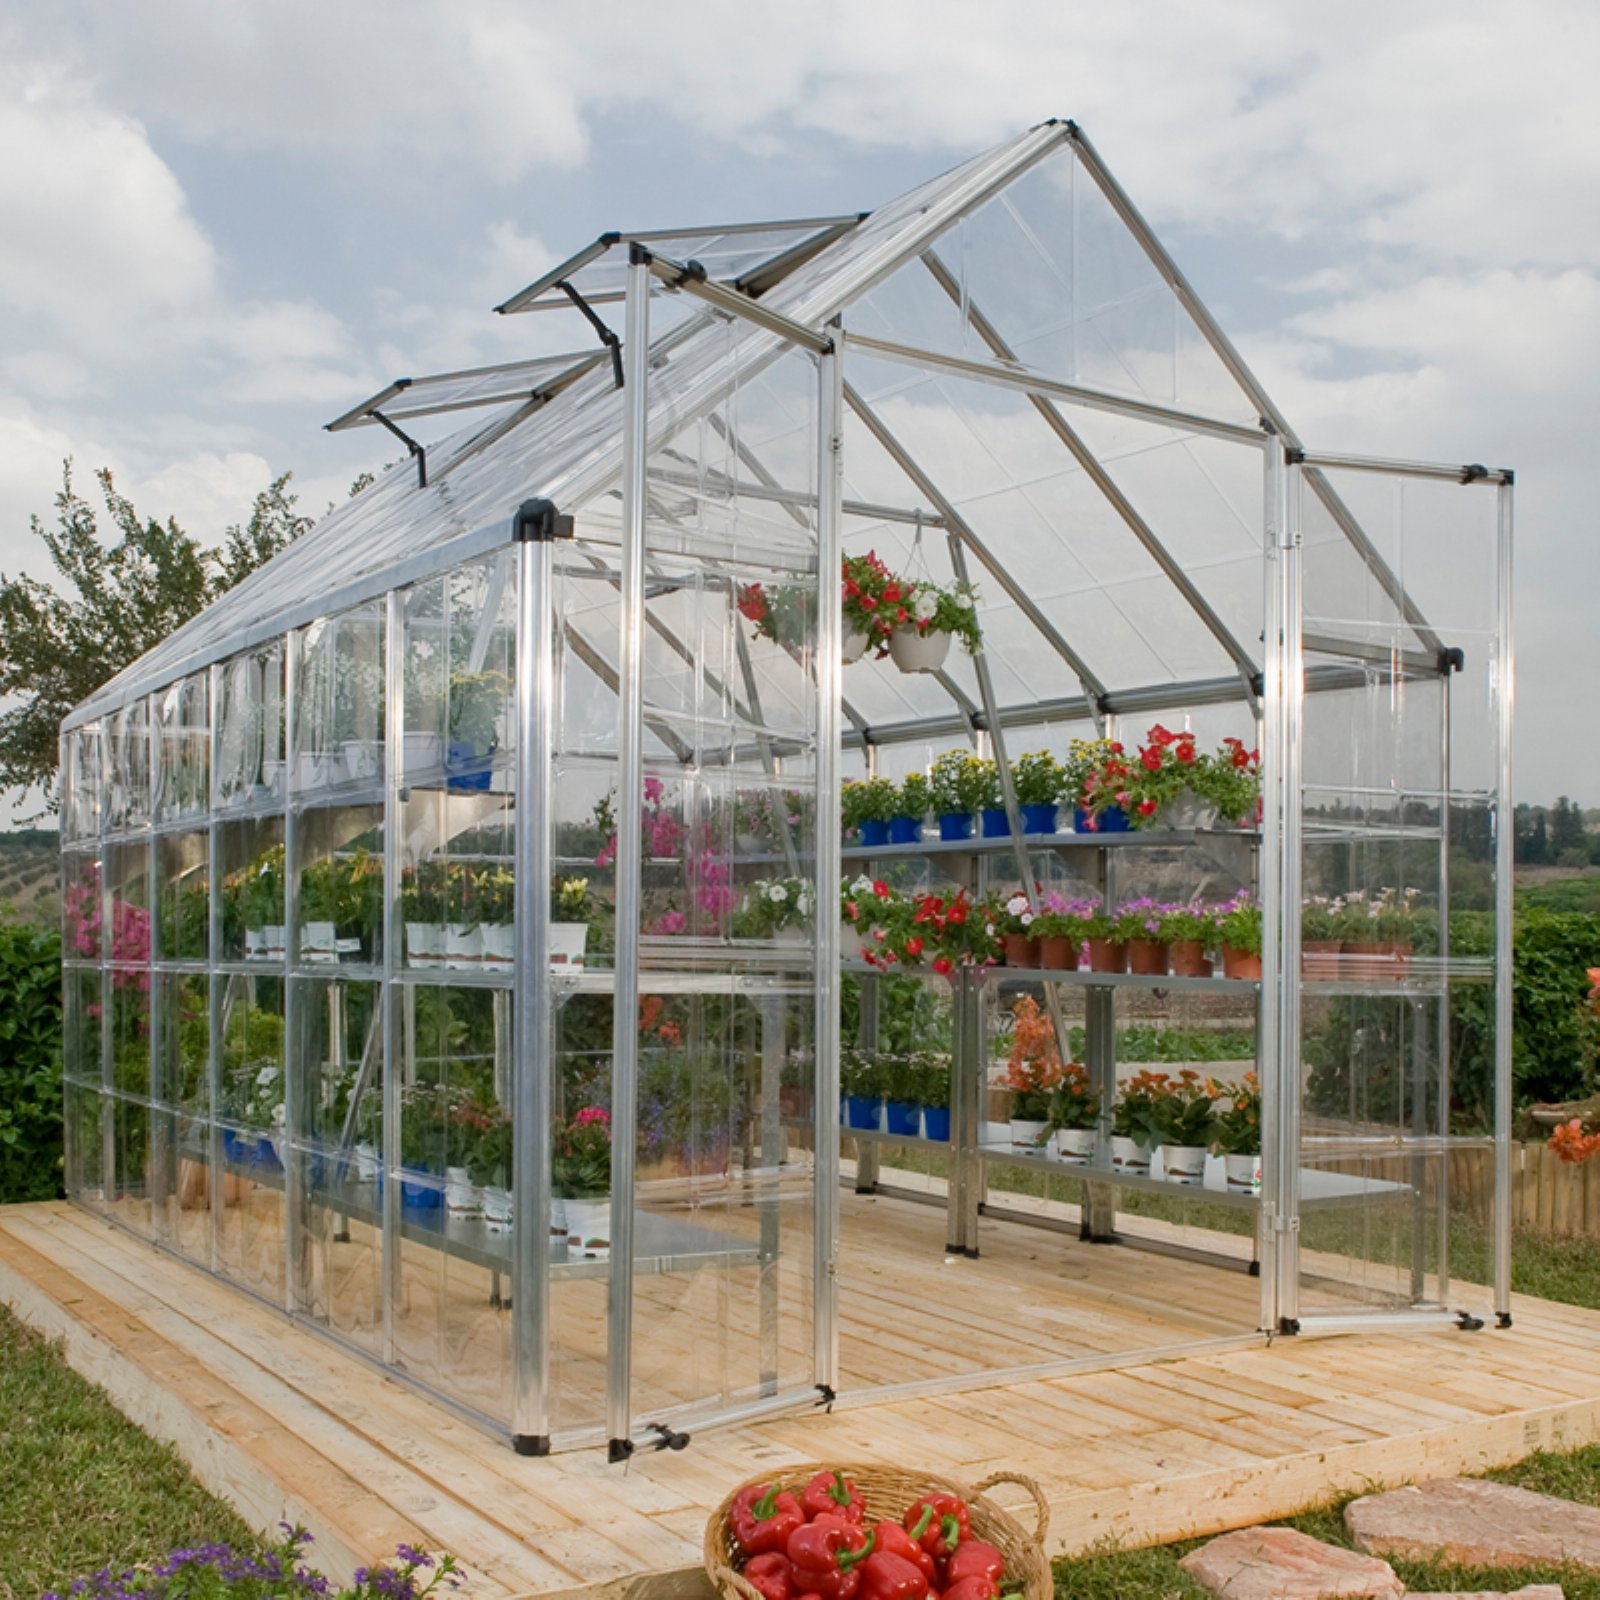 Snap and Grow 8' x 20' Silver Frame Hobby Greenhouse by Palram